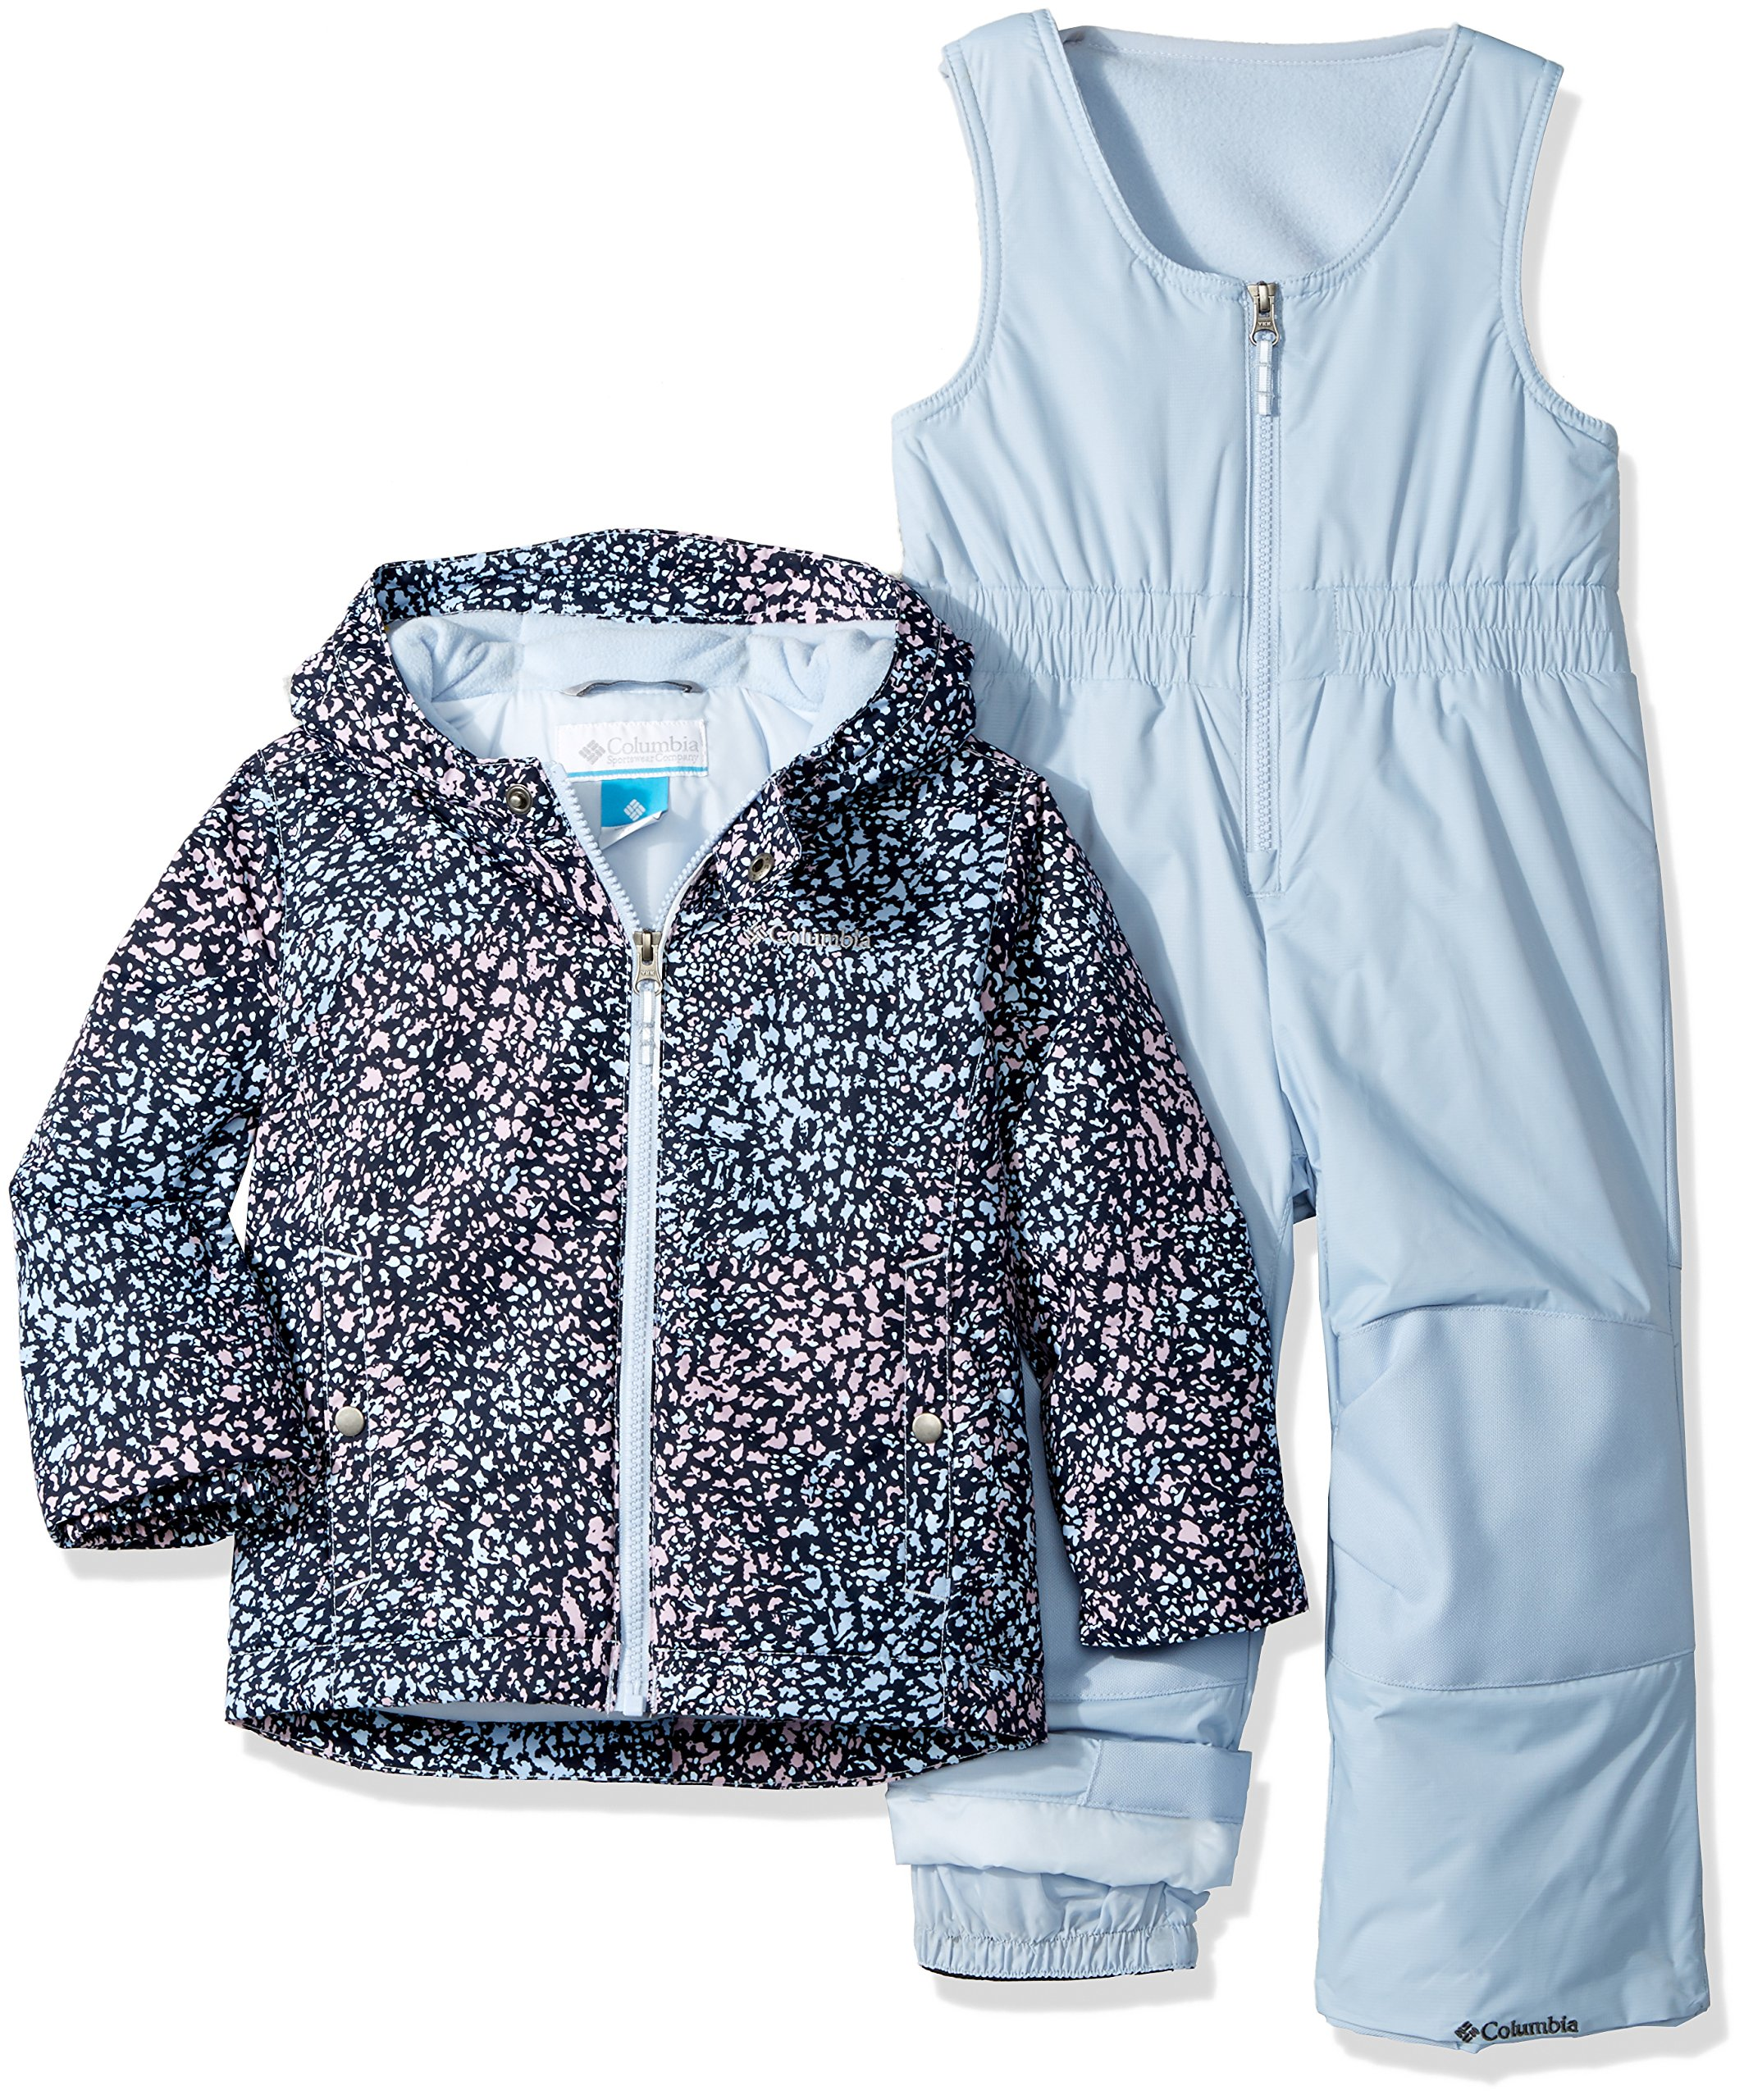 Columbia Kids' Toddler Frosty Slope Set, Faded Sky Snow Splatter, 2T by Columbia